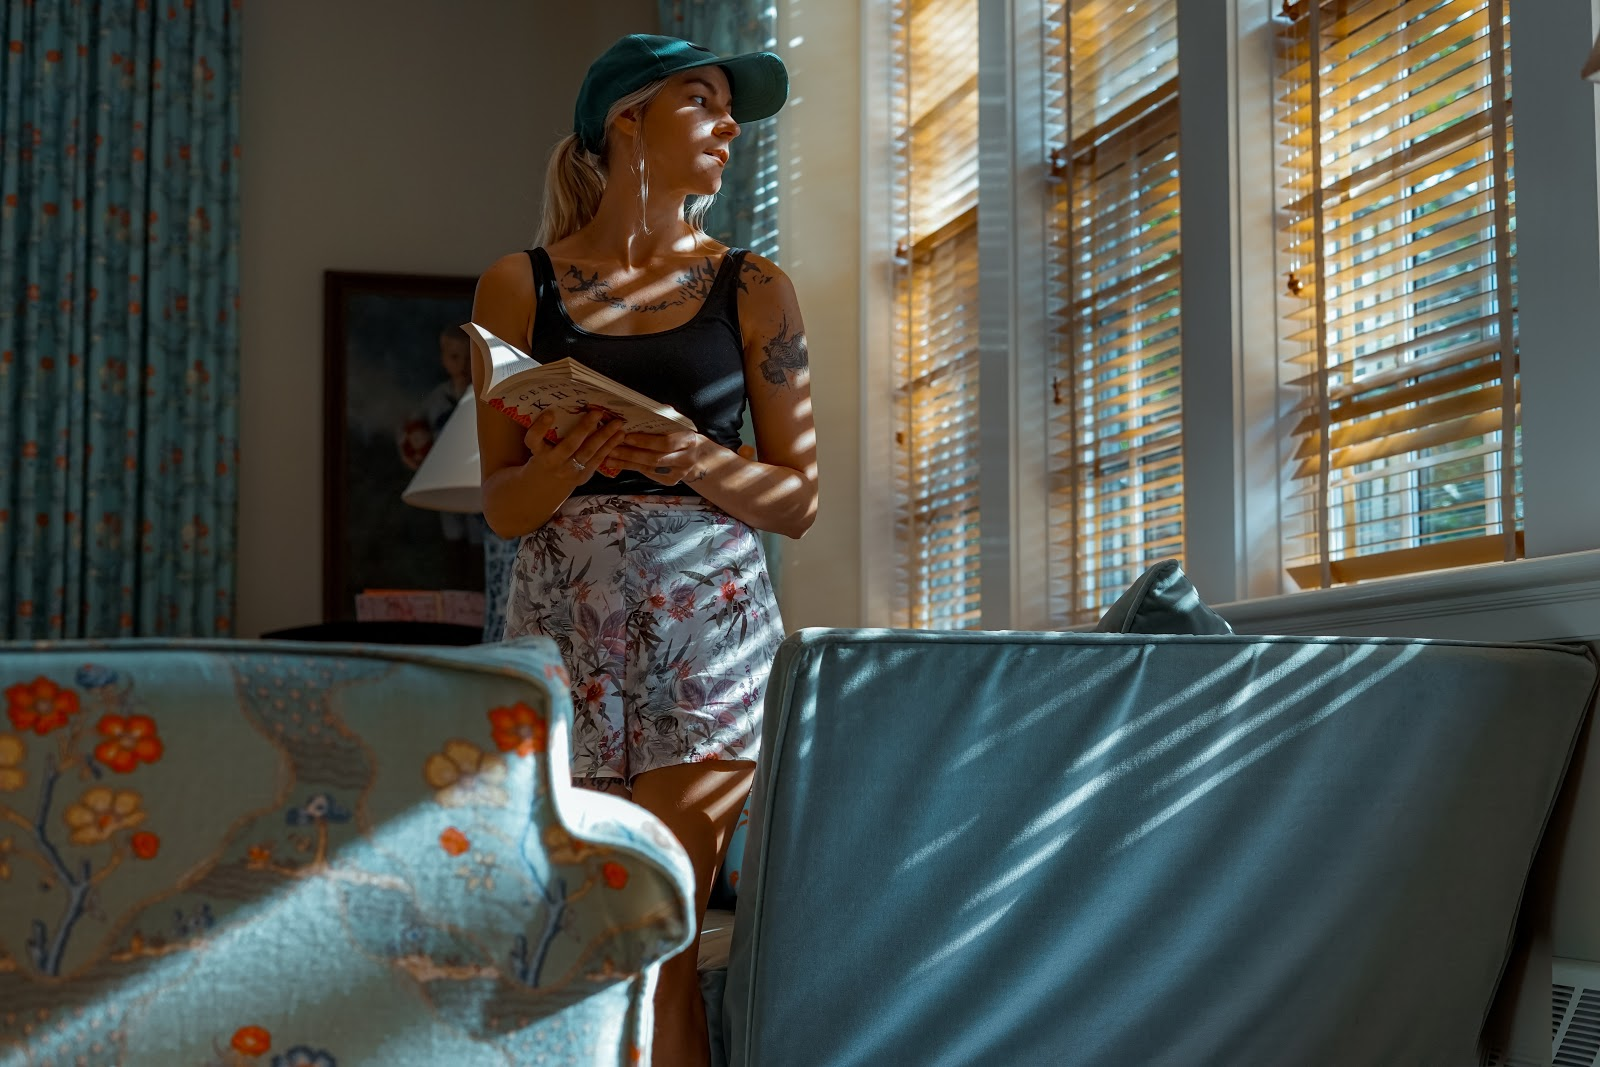 woman staring out window with blinds silhouette on her